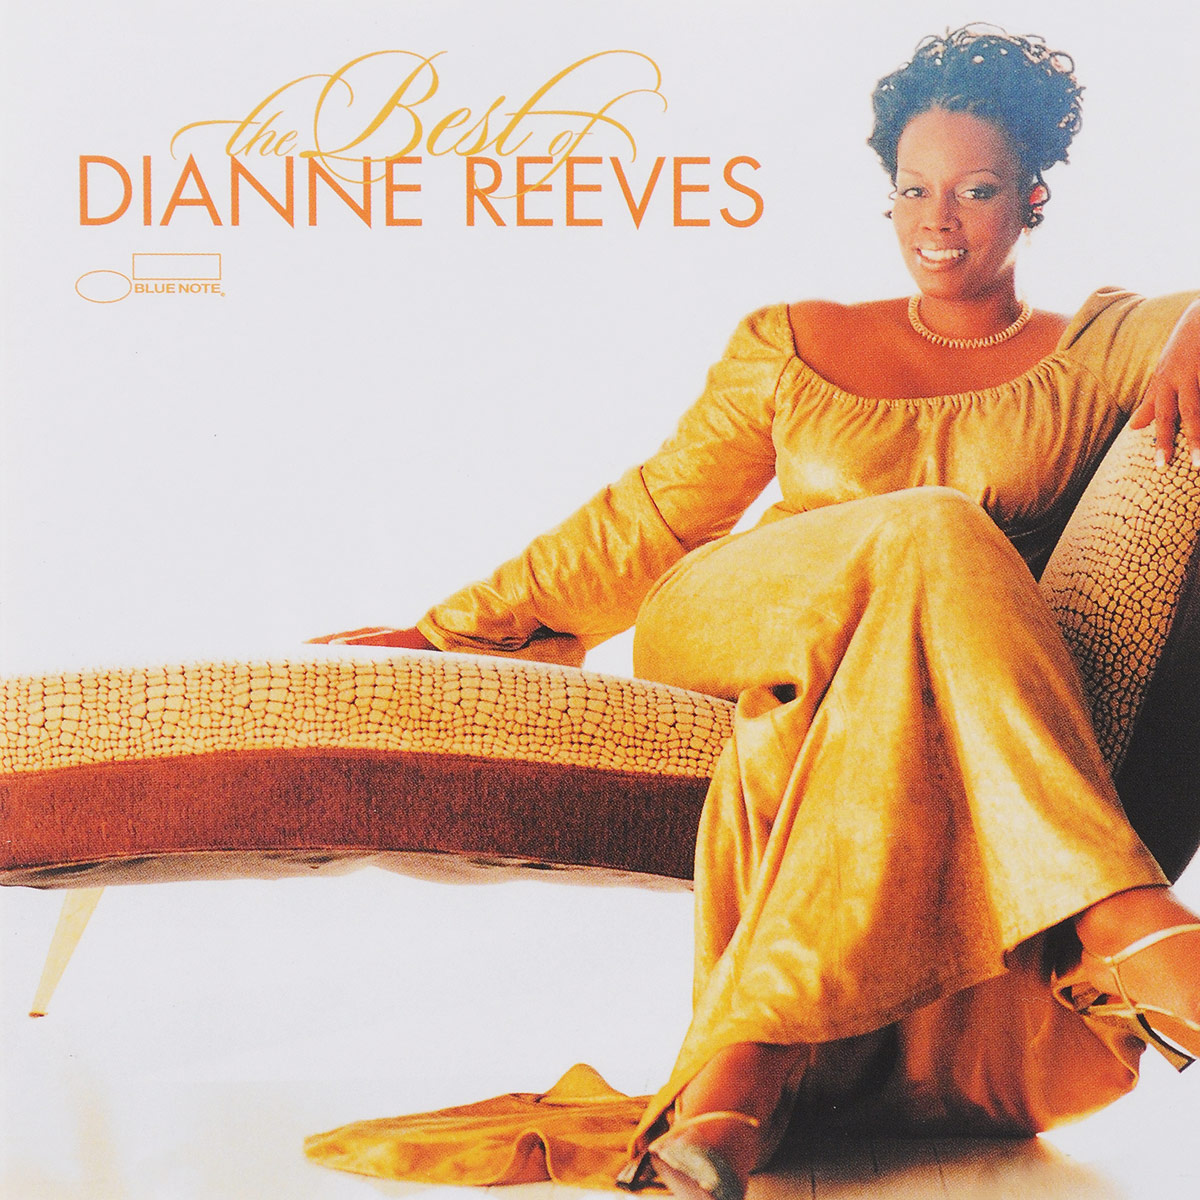 цена Диан Ривз Dianne Reeves. The Best Of Dianne Reeves в интернет-магазинах